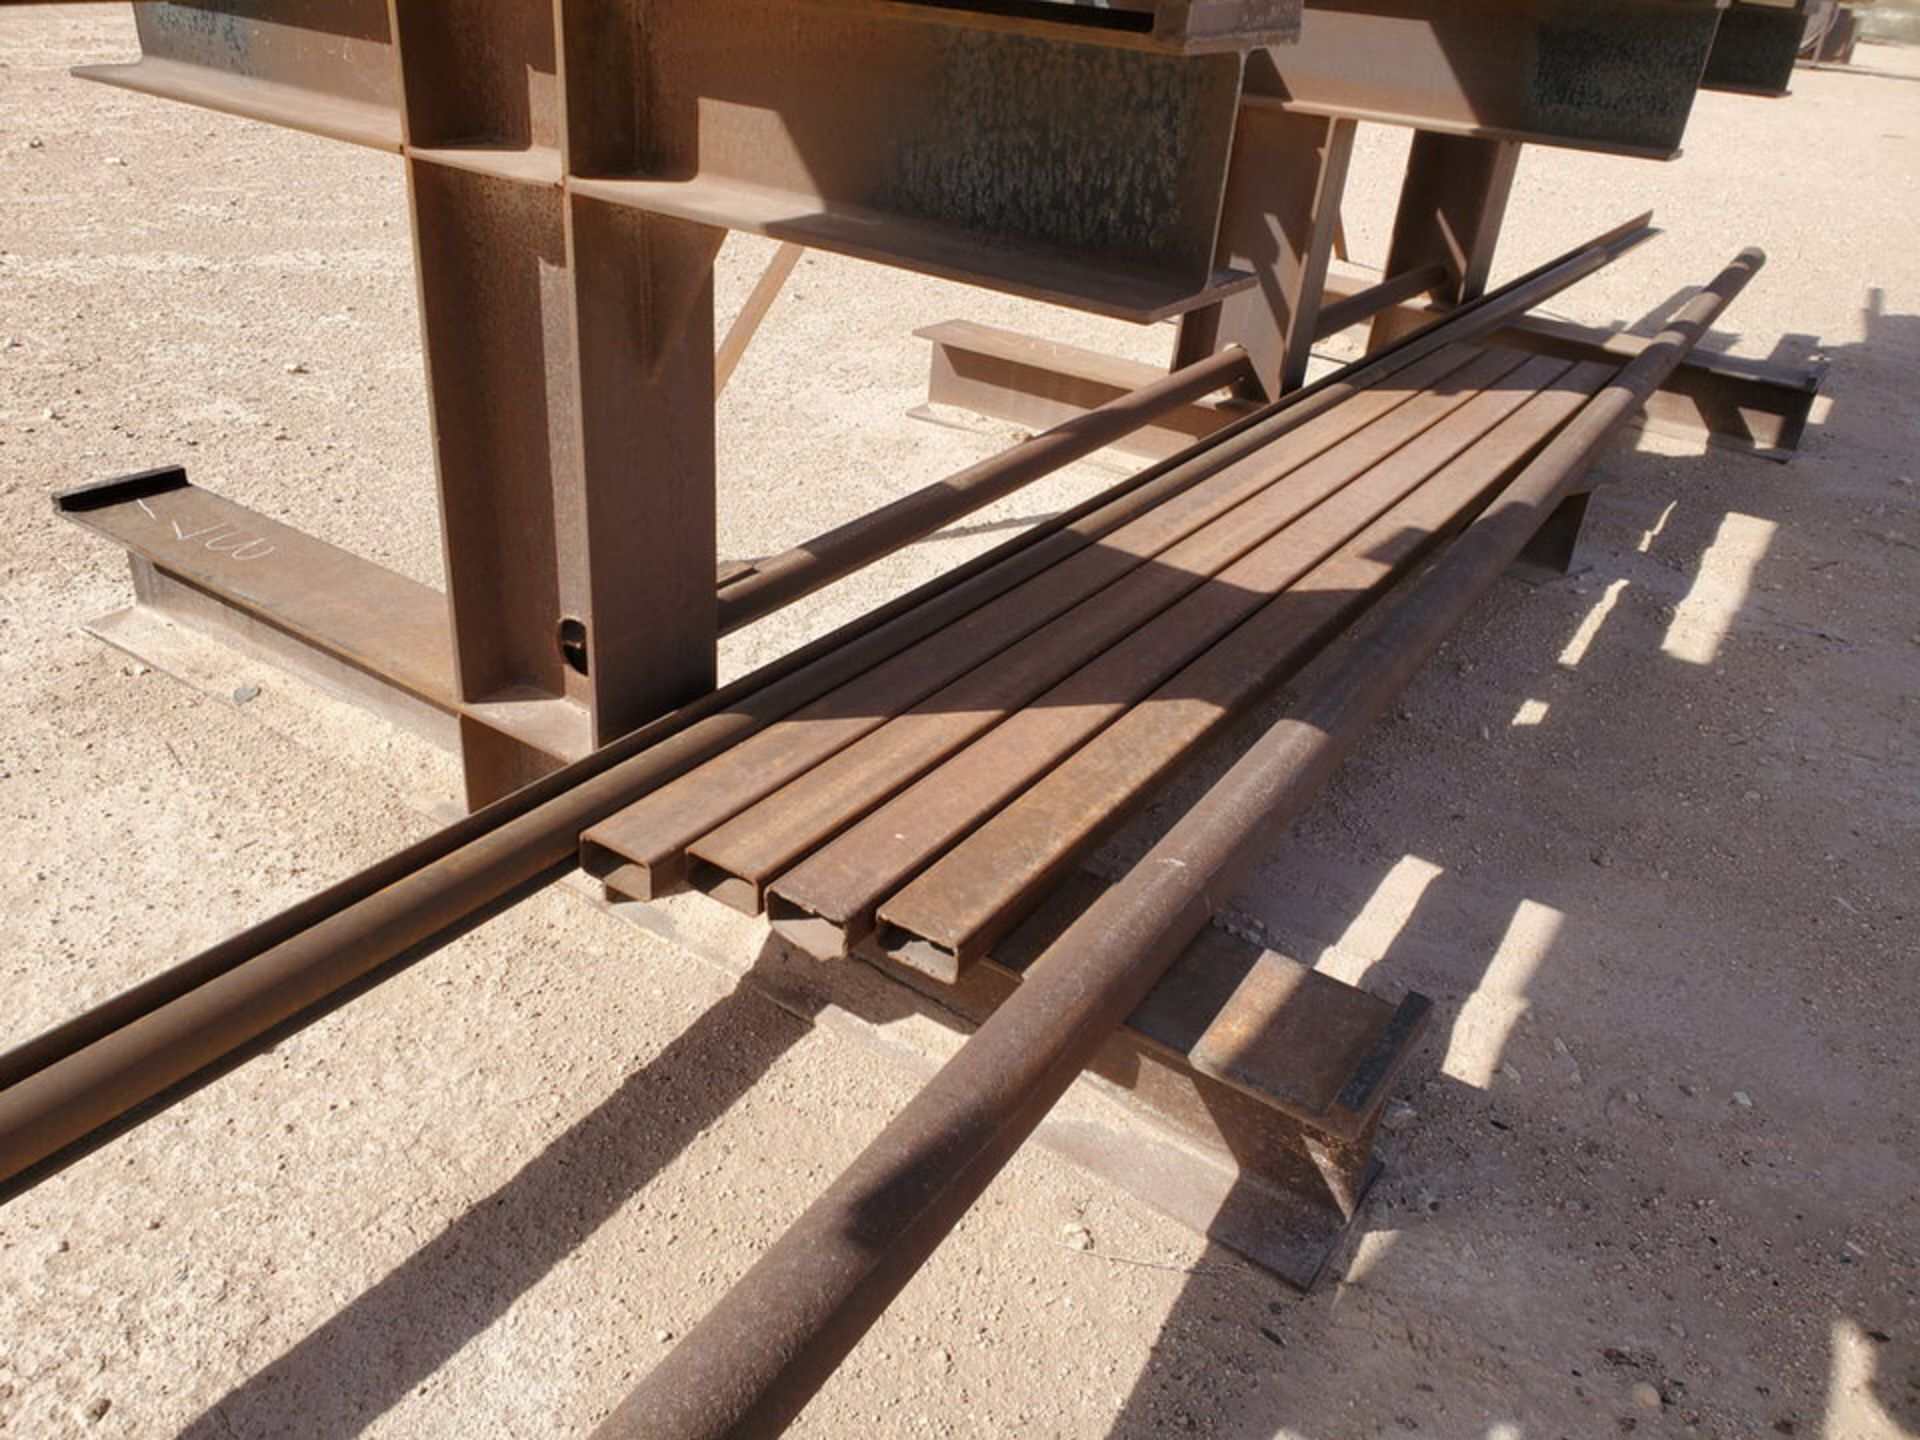 """(65) Angle, Pipe, Rect. Tubing & Other D: 3""""-4"""", L: 10' - 23'6""""; W/ Racks - Image 17 of 19"""